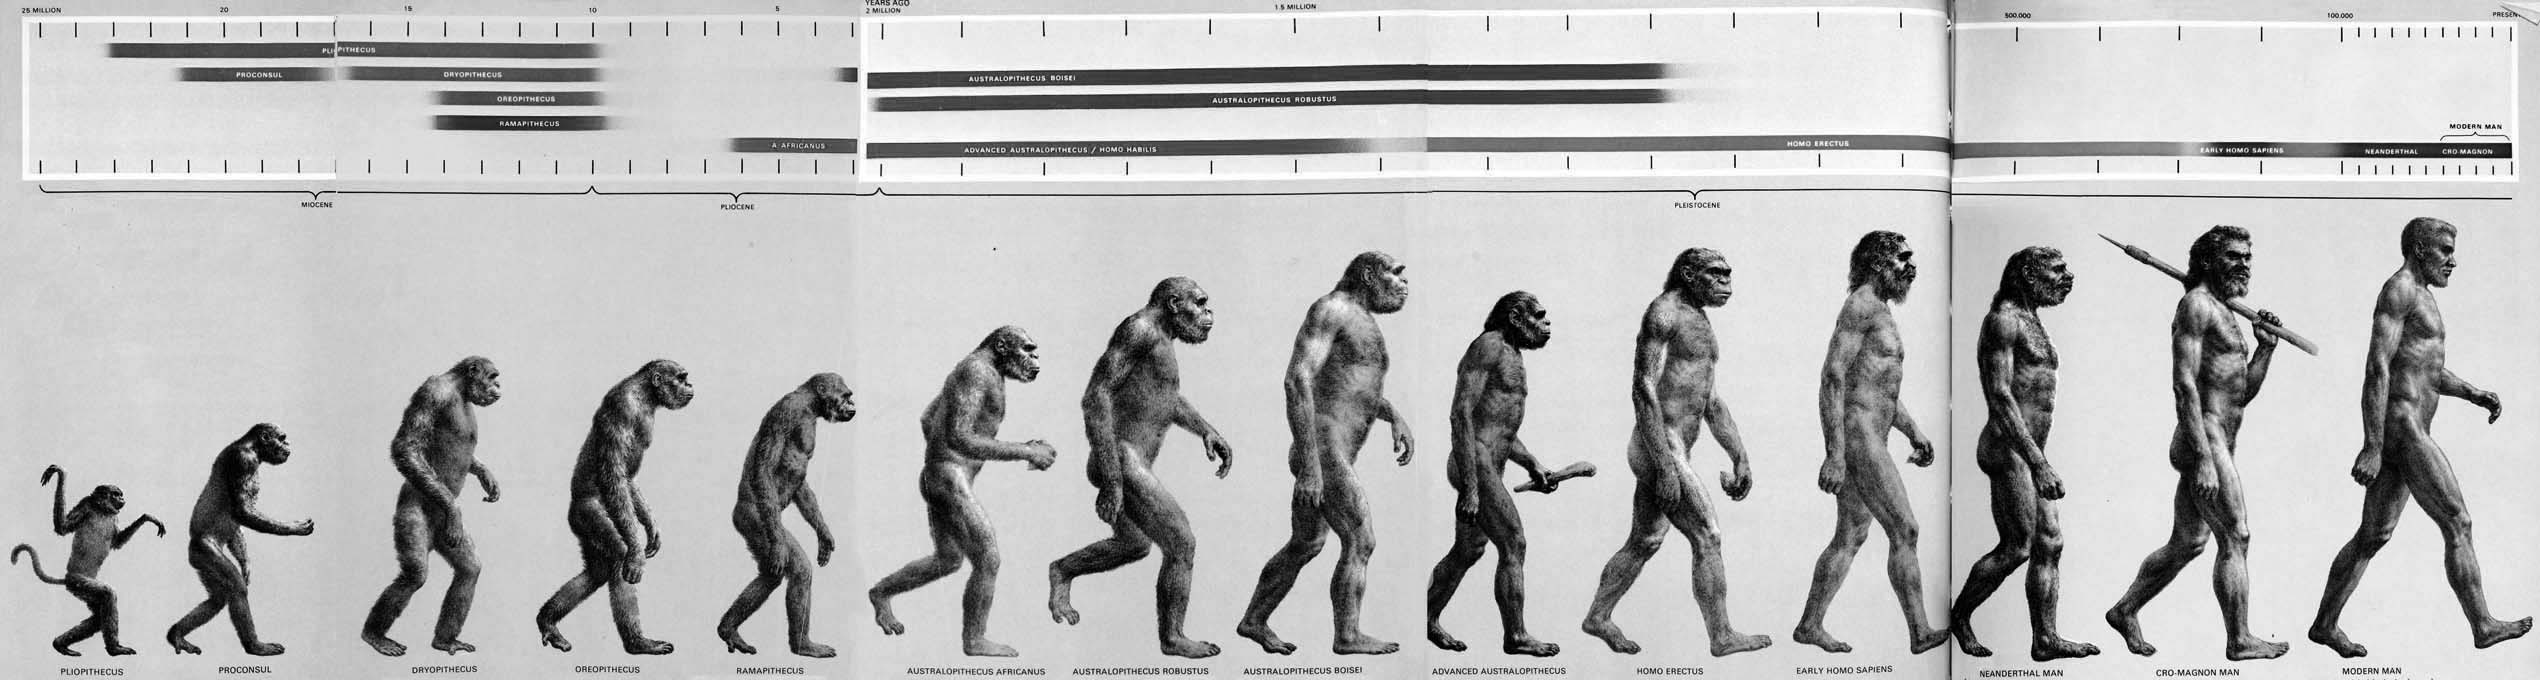 darwinian evolution articles